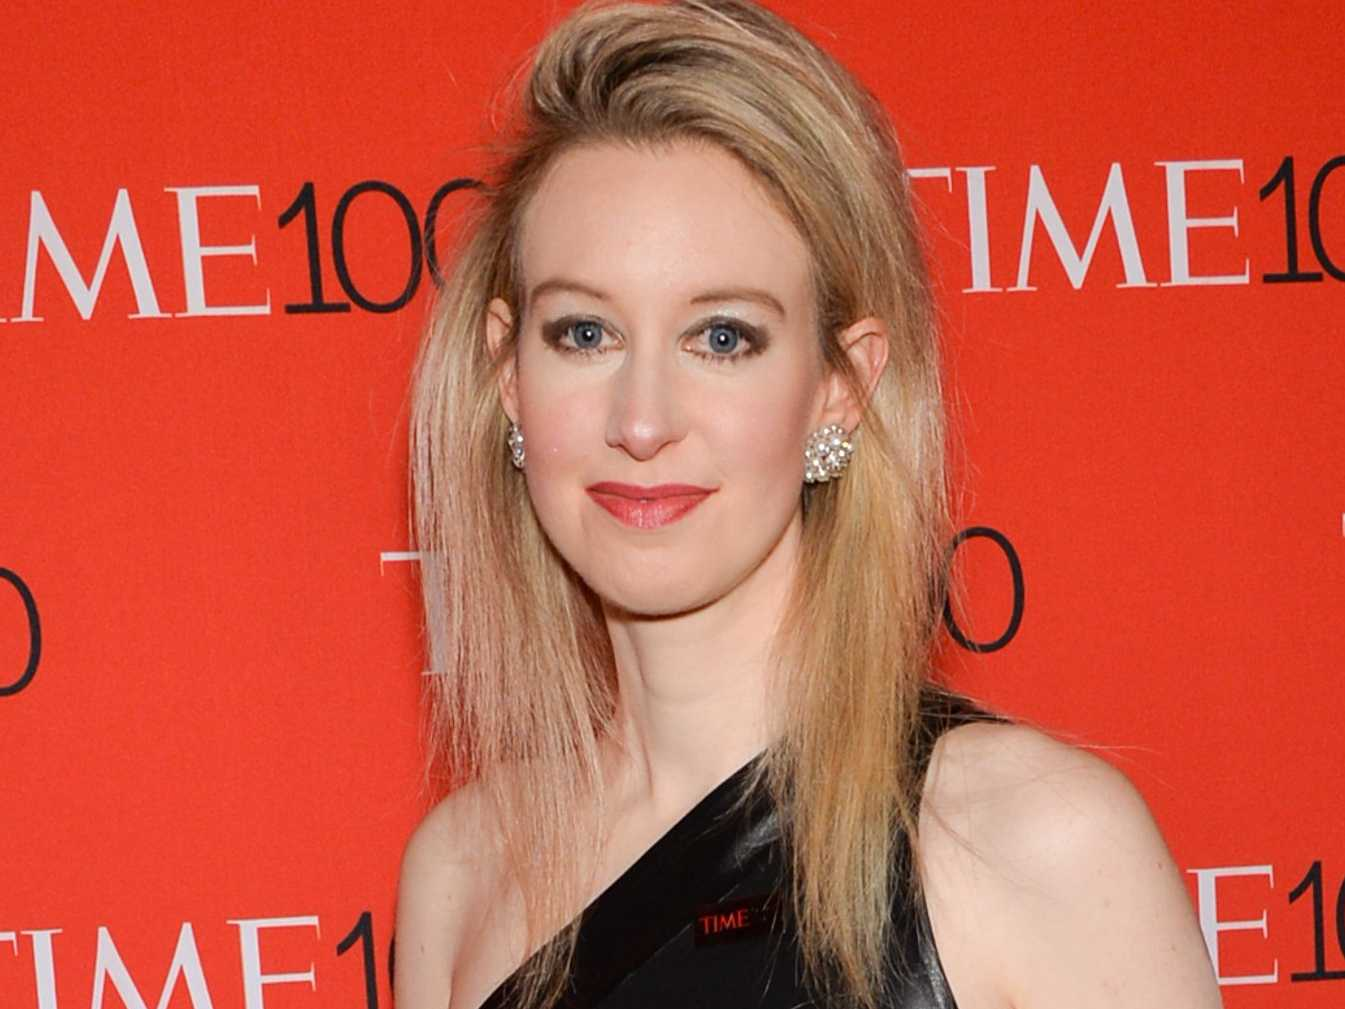 This Woman Dropped Out Of University At 19, Is Now Worth £5.9 Billion UNILAD elizabeth holmes 390919